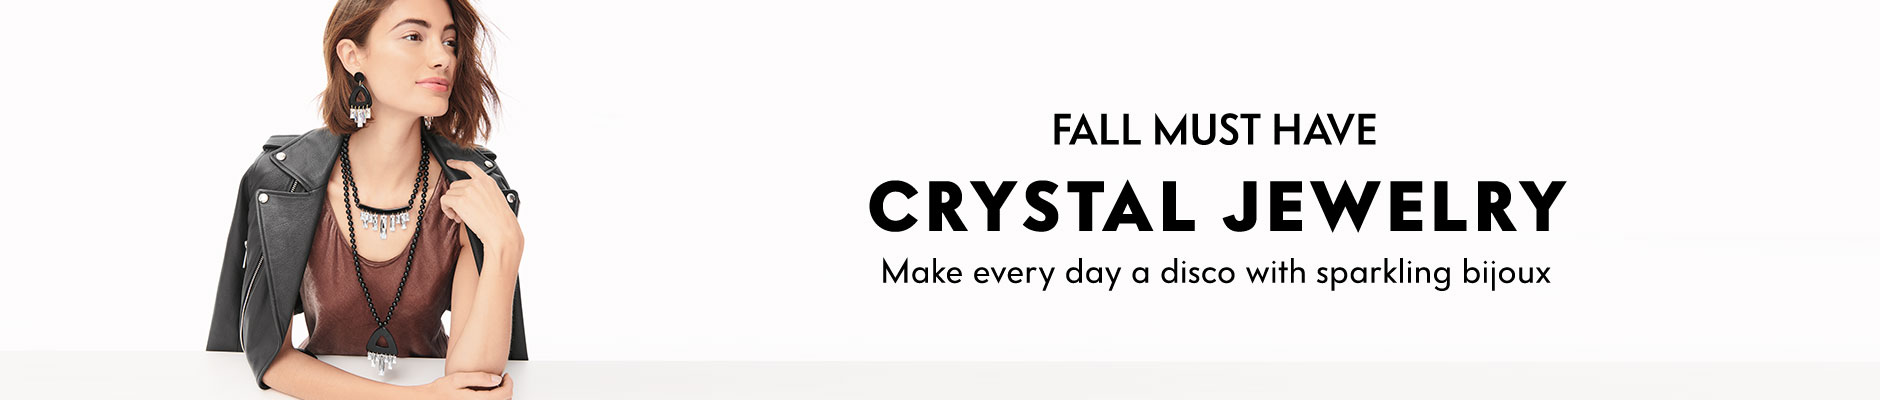 Fall Must Have: Crystal Jewelry - Make every day a disco with sparkling bijoux